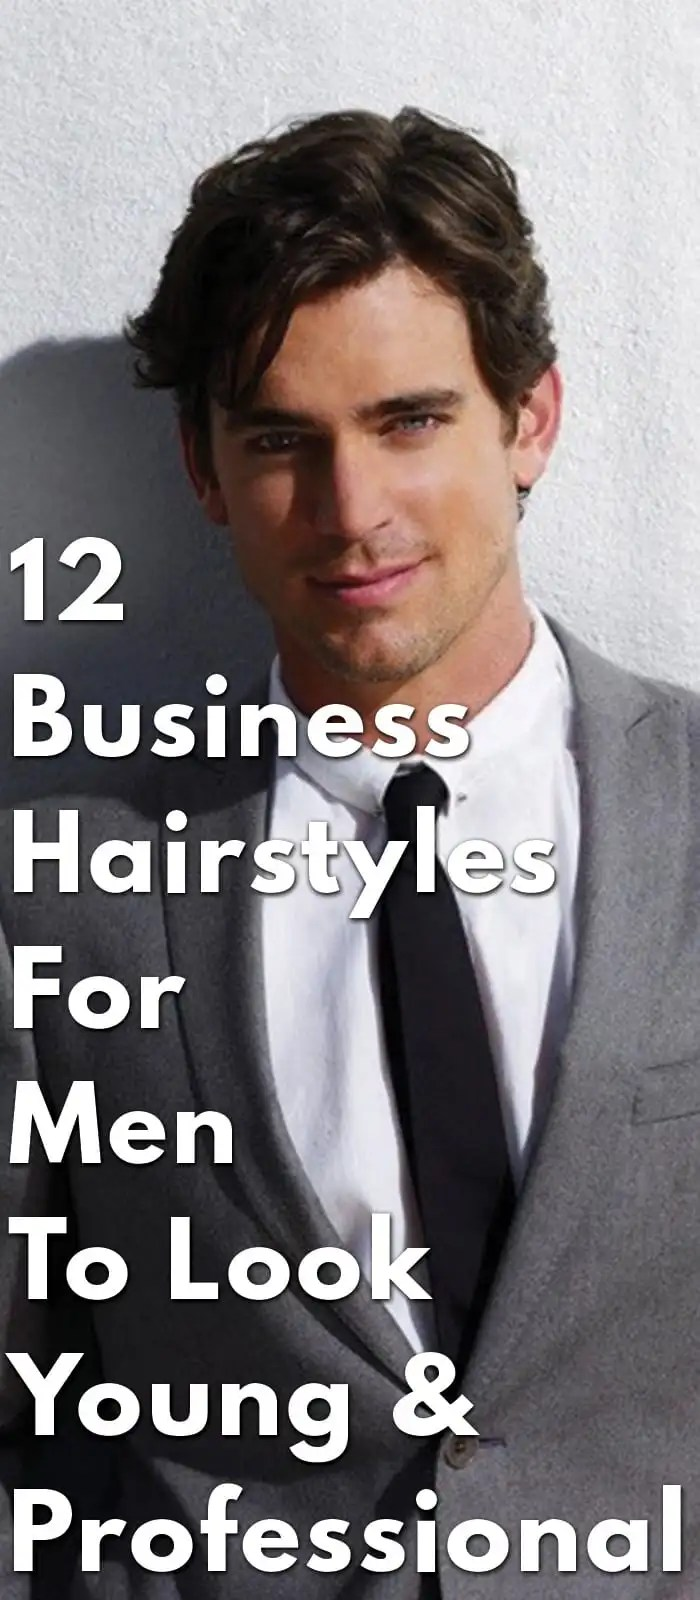 12 Business Hairstyles For Men To Look Young Professional Best